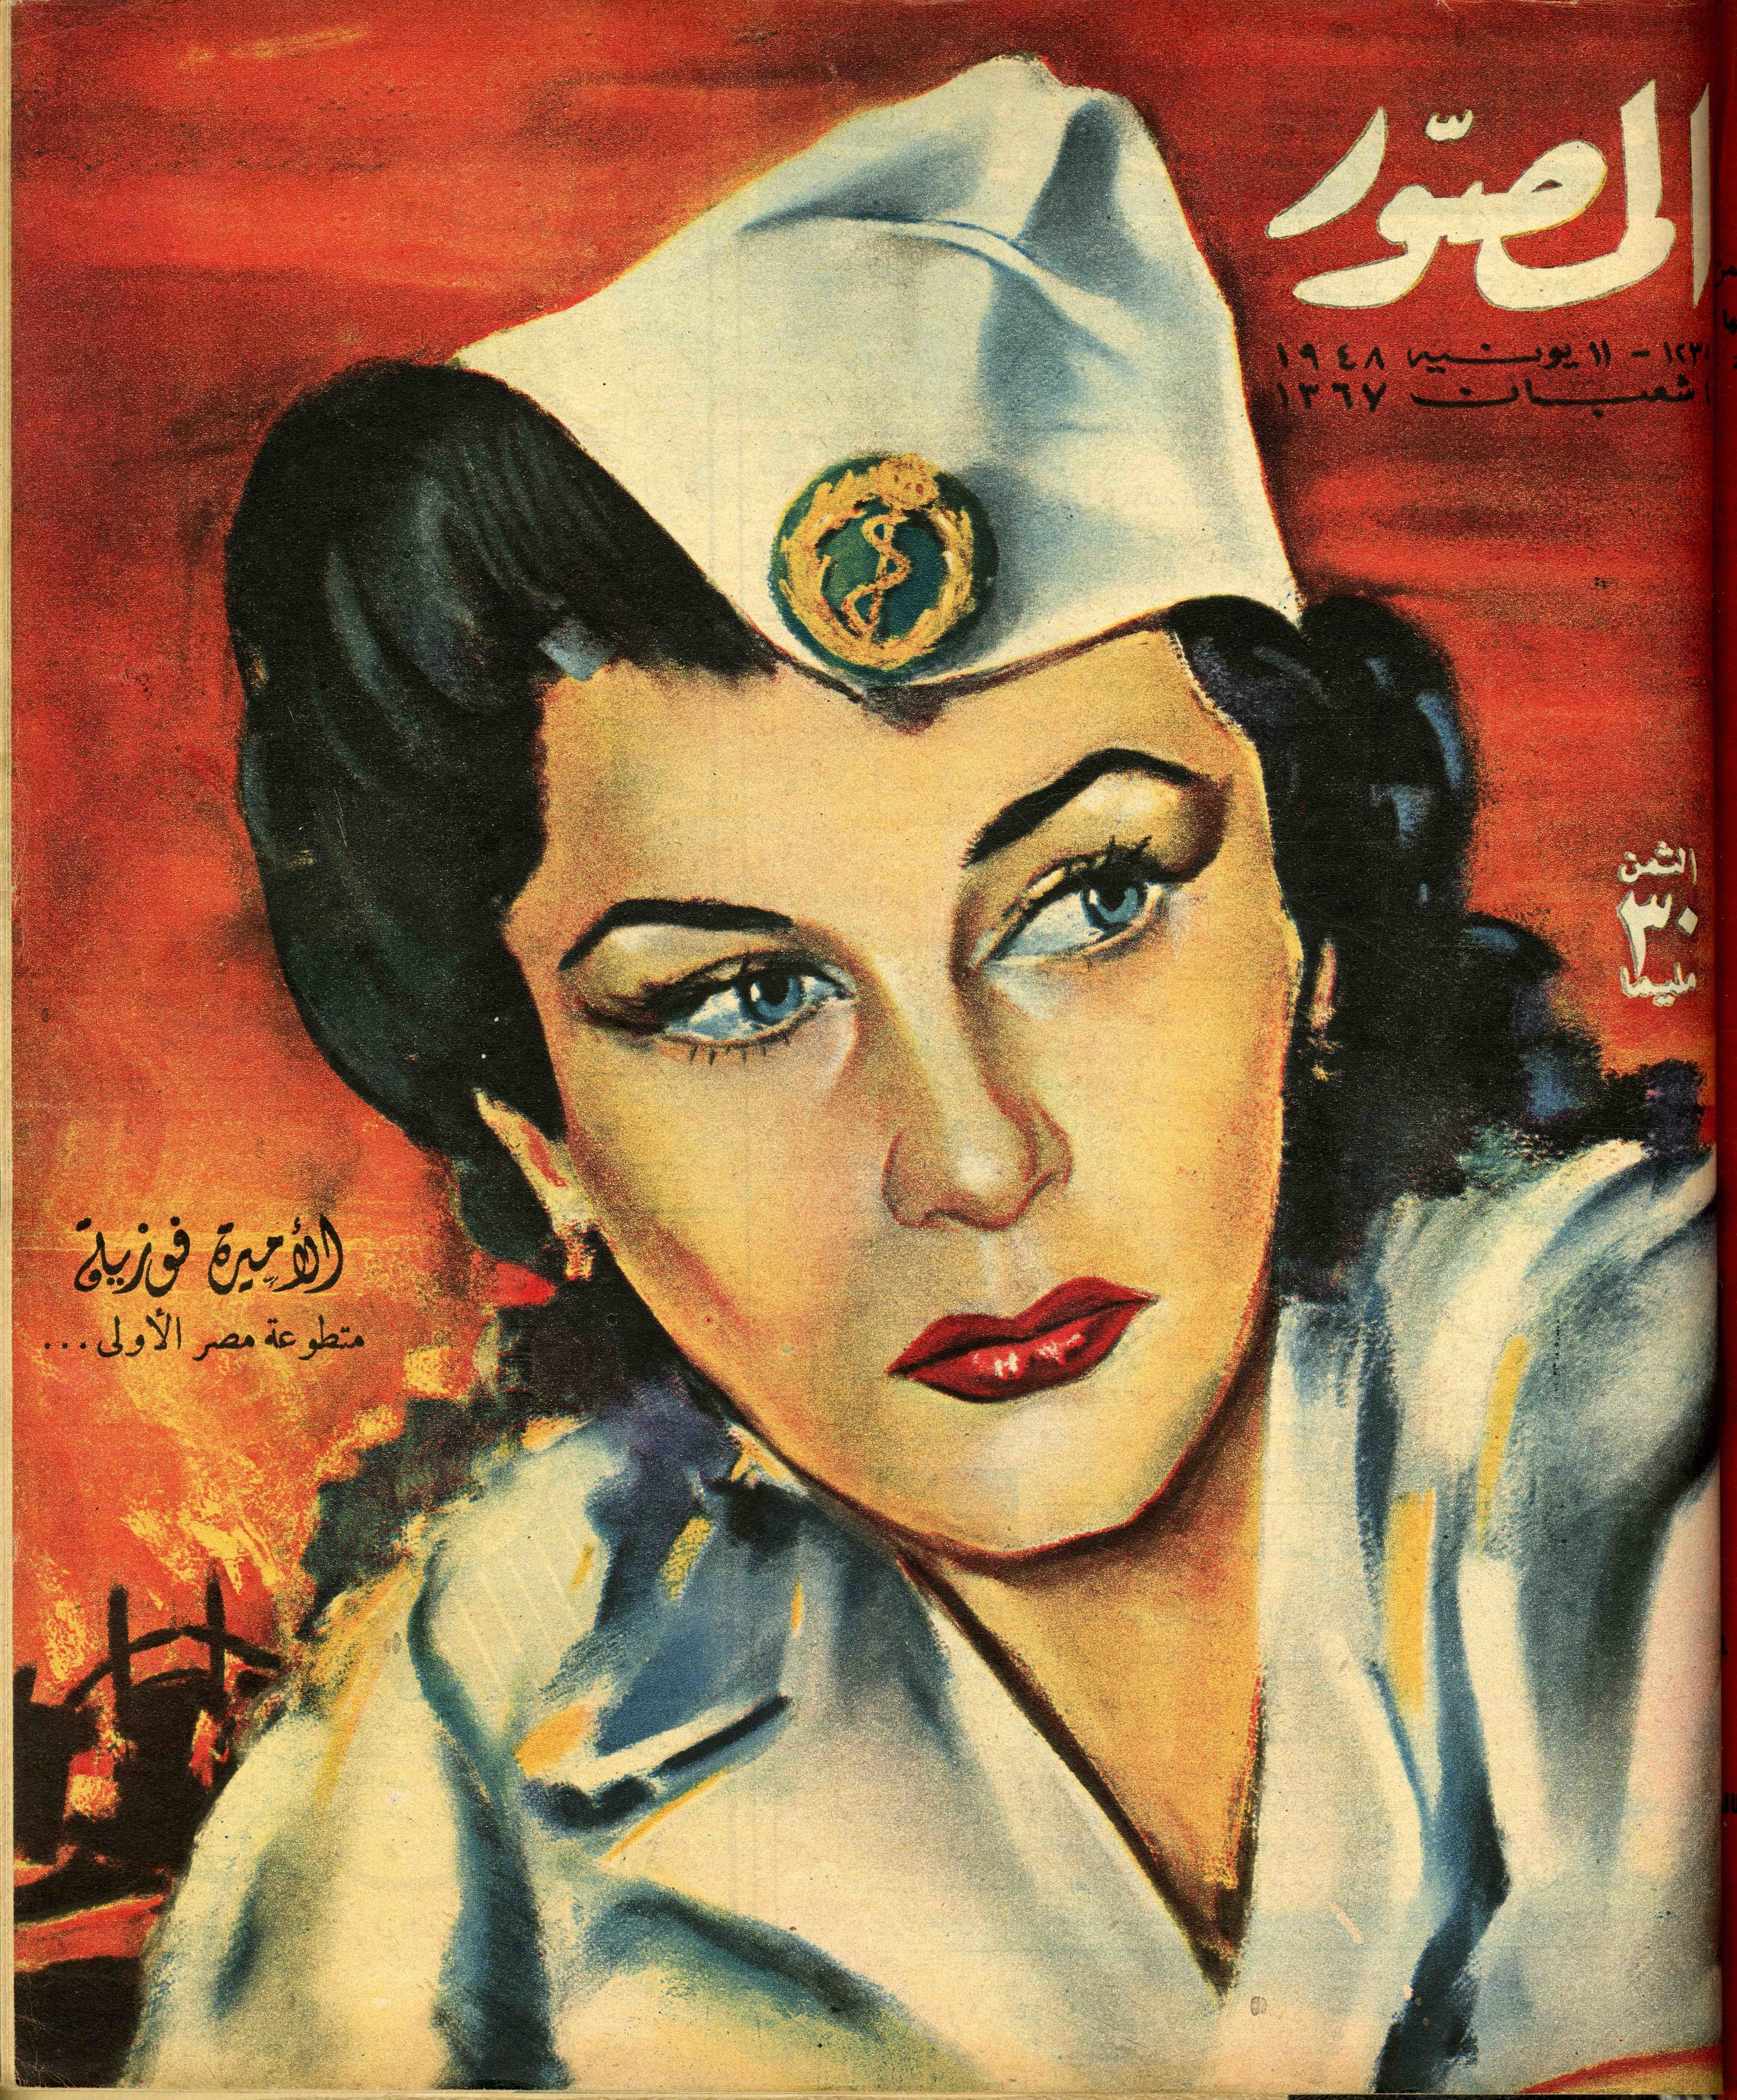 The princess on the cover of 'Al Musawwar' magazine in June 1948.